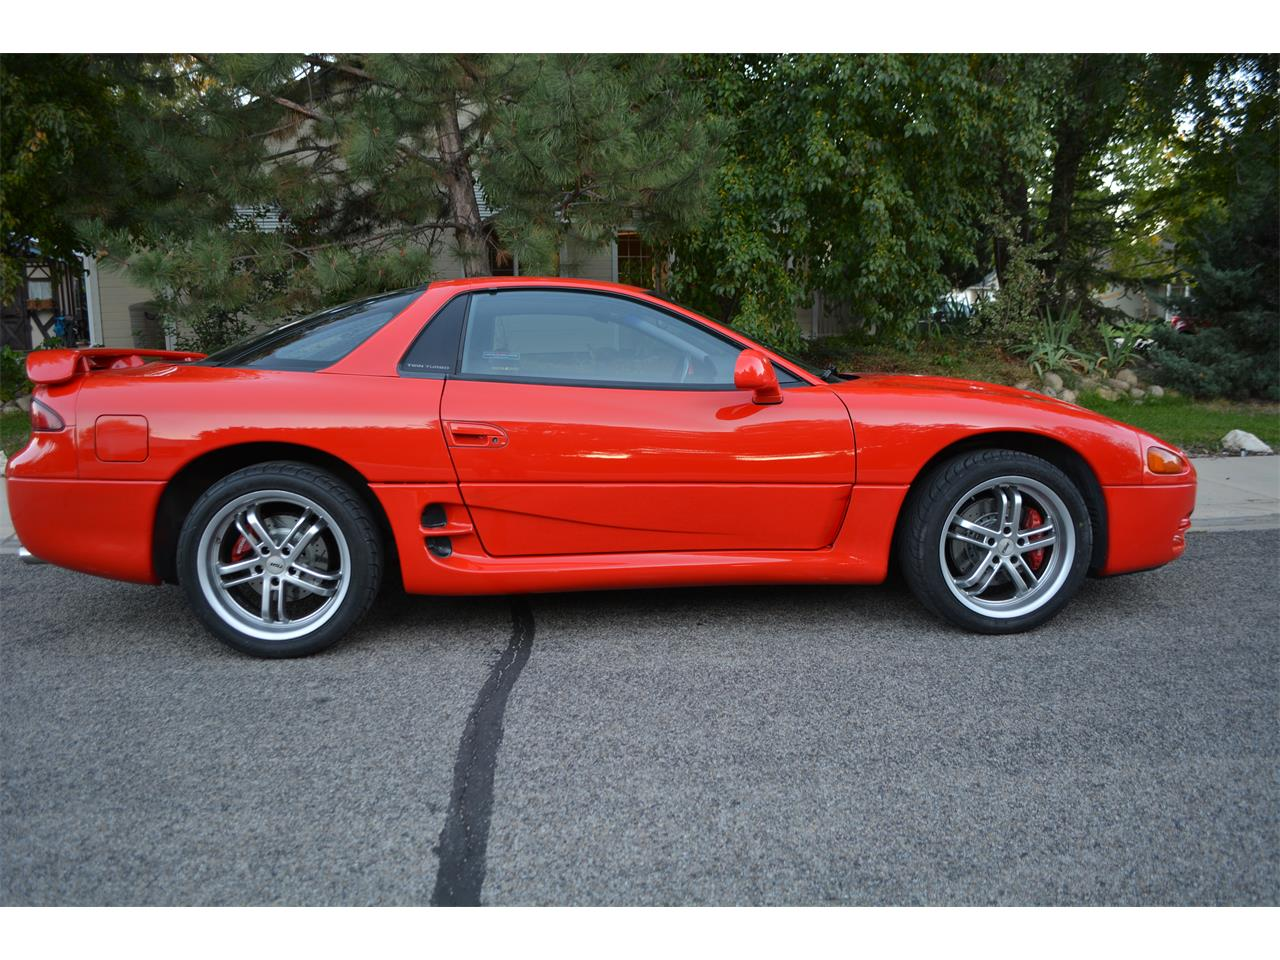 For Sale: 1995 Mitsubishi 3000GT VR4 in Meridian, Idaho